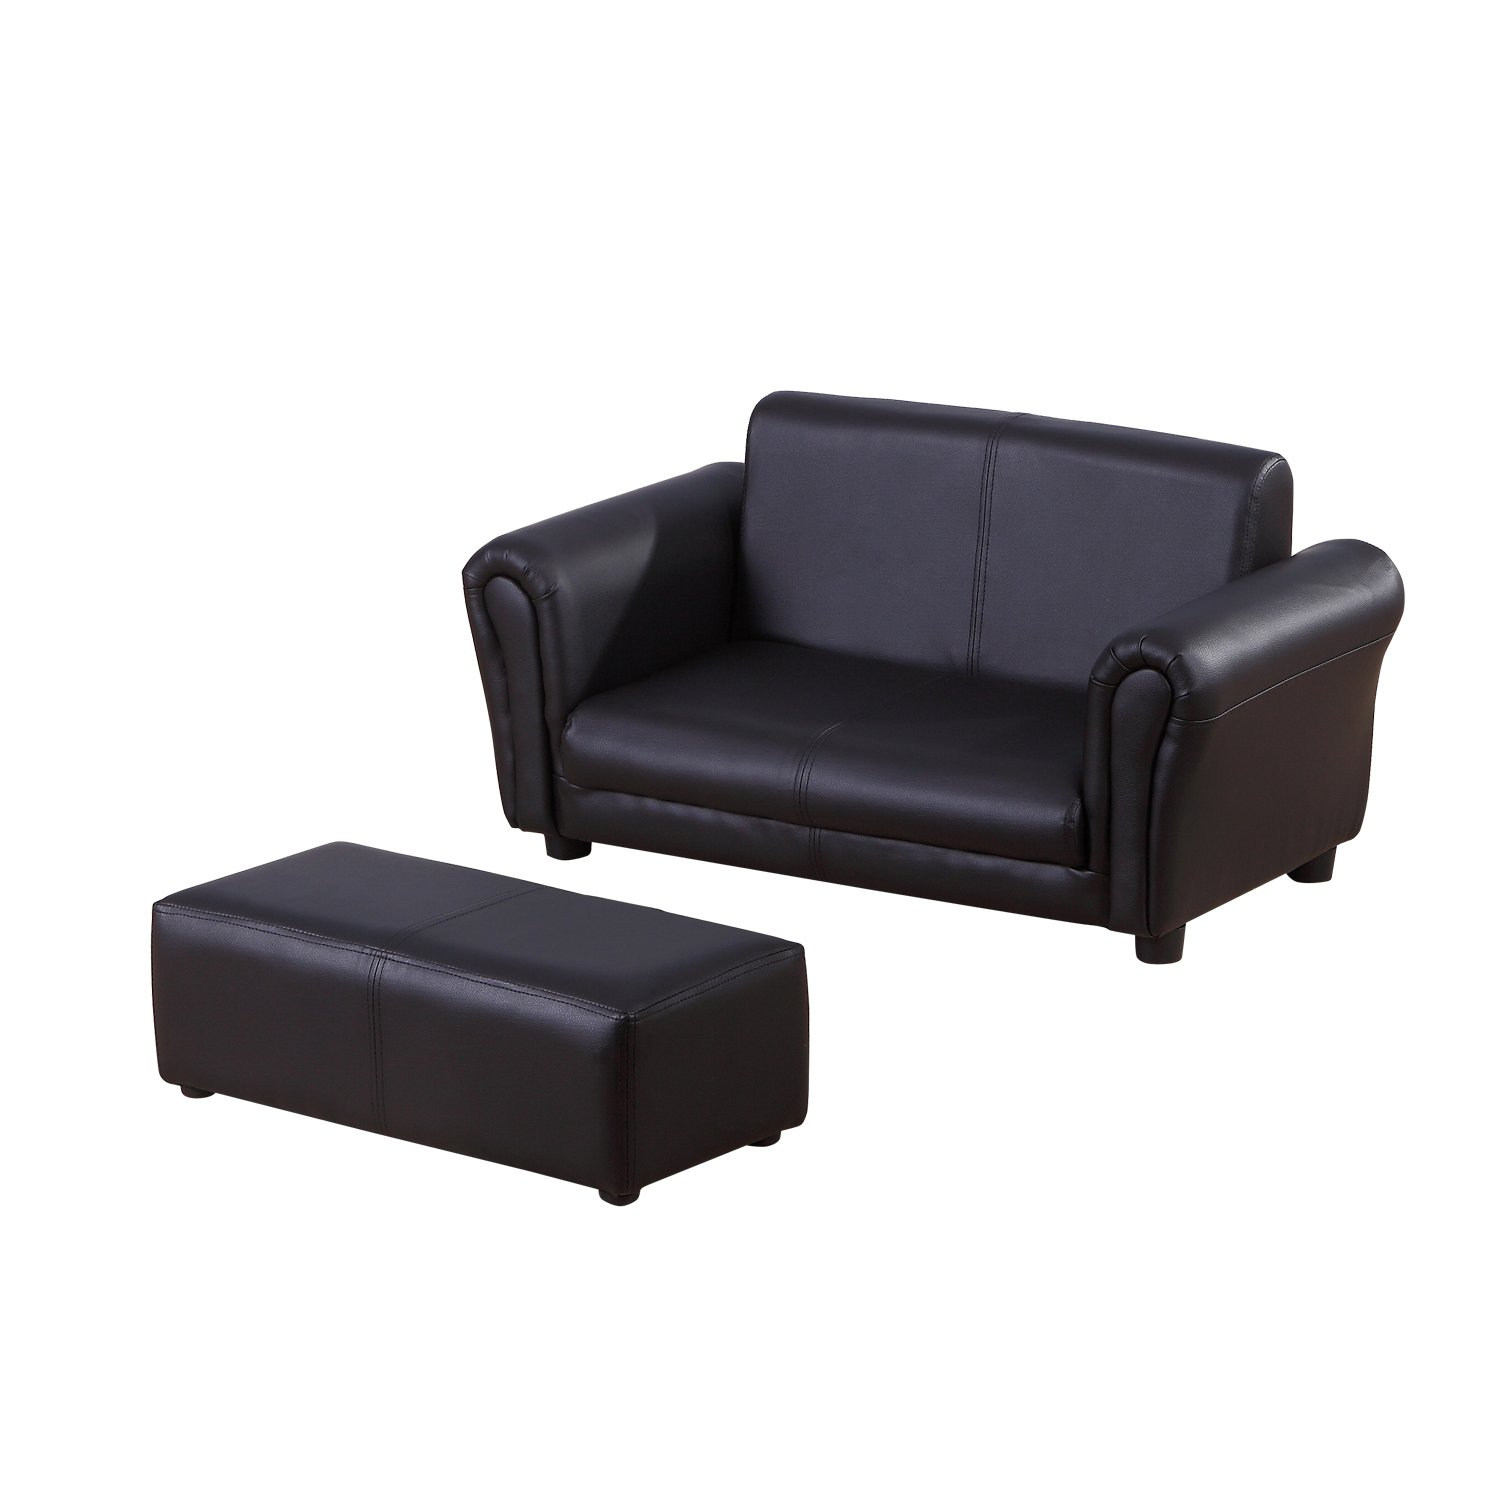 HOM 2 Seater Kids Twin Sofa Childrens Double Seat Chair